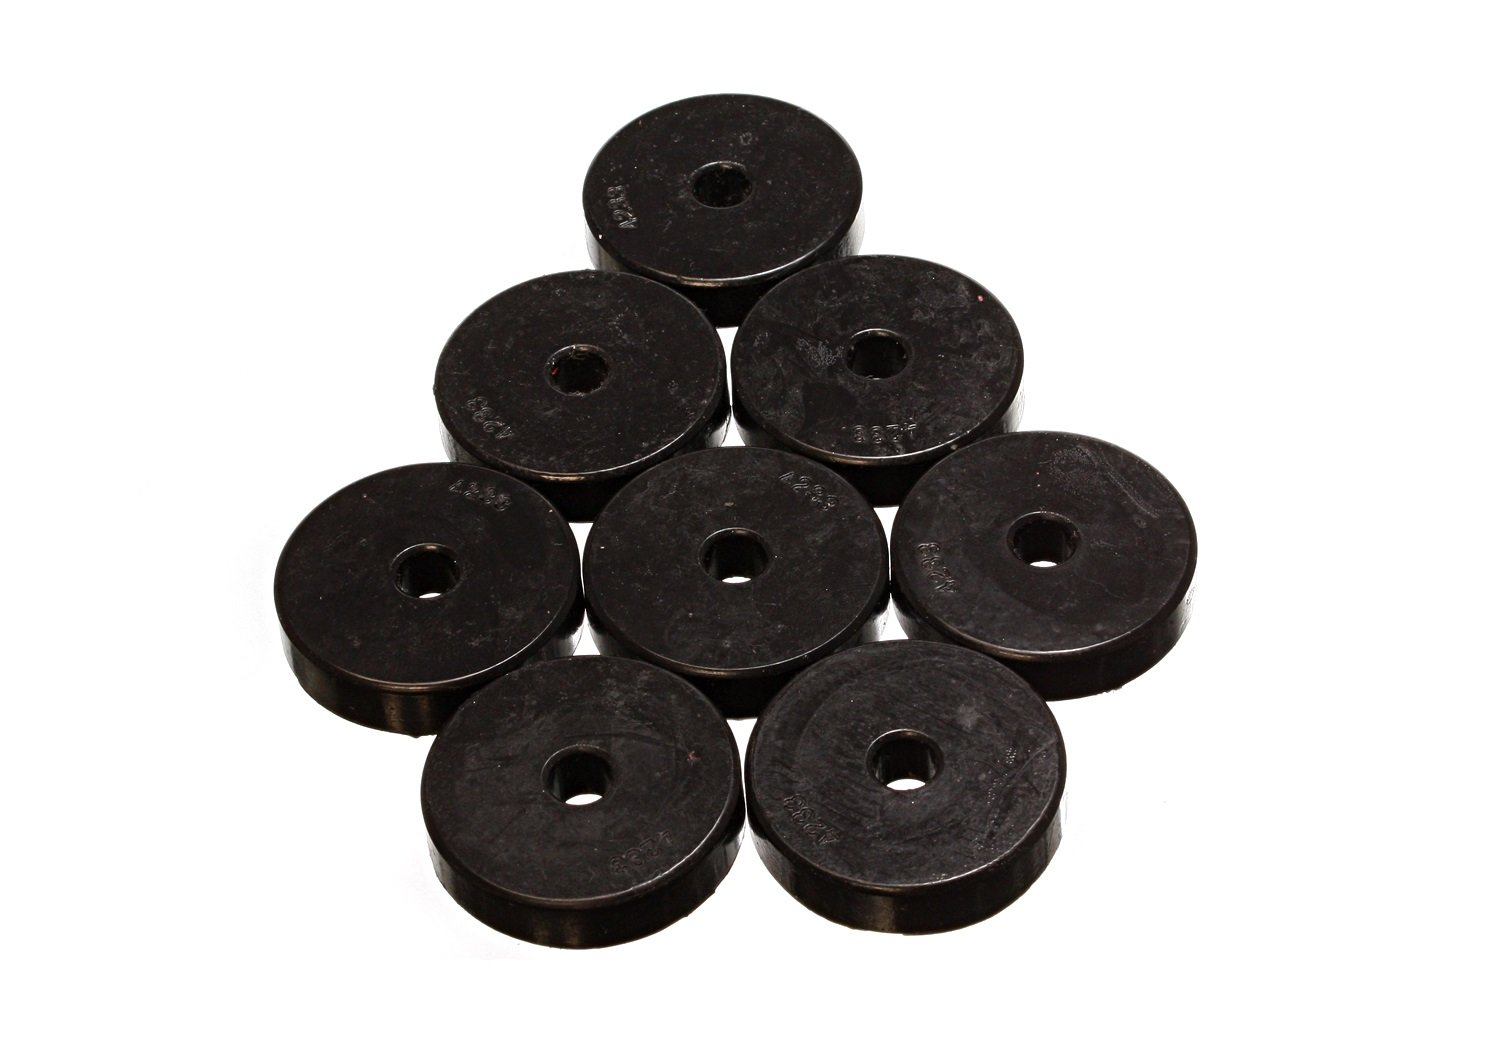 Energy Suspension 9.9528G Leaf Spring Pad, 2-9/32' O.D x 7/16' I.D x 1/2' Height 2-9/32 O.D x 7/16 I.D x 1/2 Height